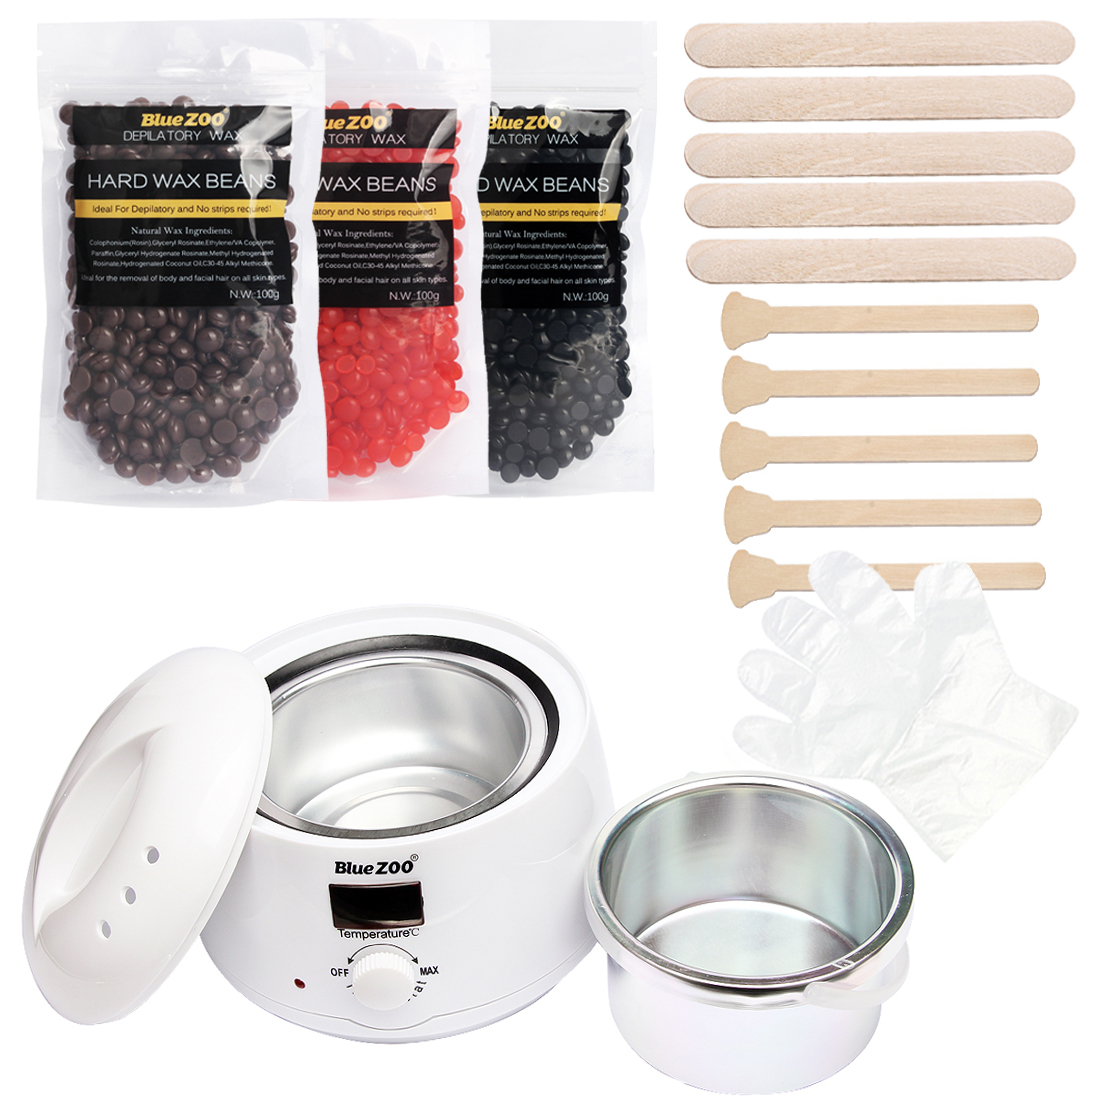 Wax Heater Set Wax Beans No Paper Needed Waxing Hair Removal Machine For Depilation With 3 Bag 100g Hot Hard Beans eseewigs 100g pc 1 3 hair bundle with closure